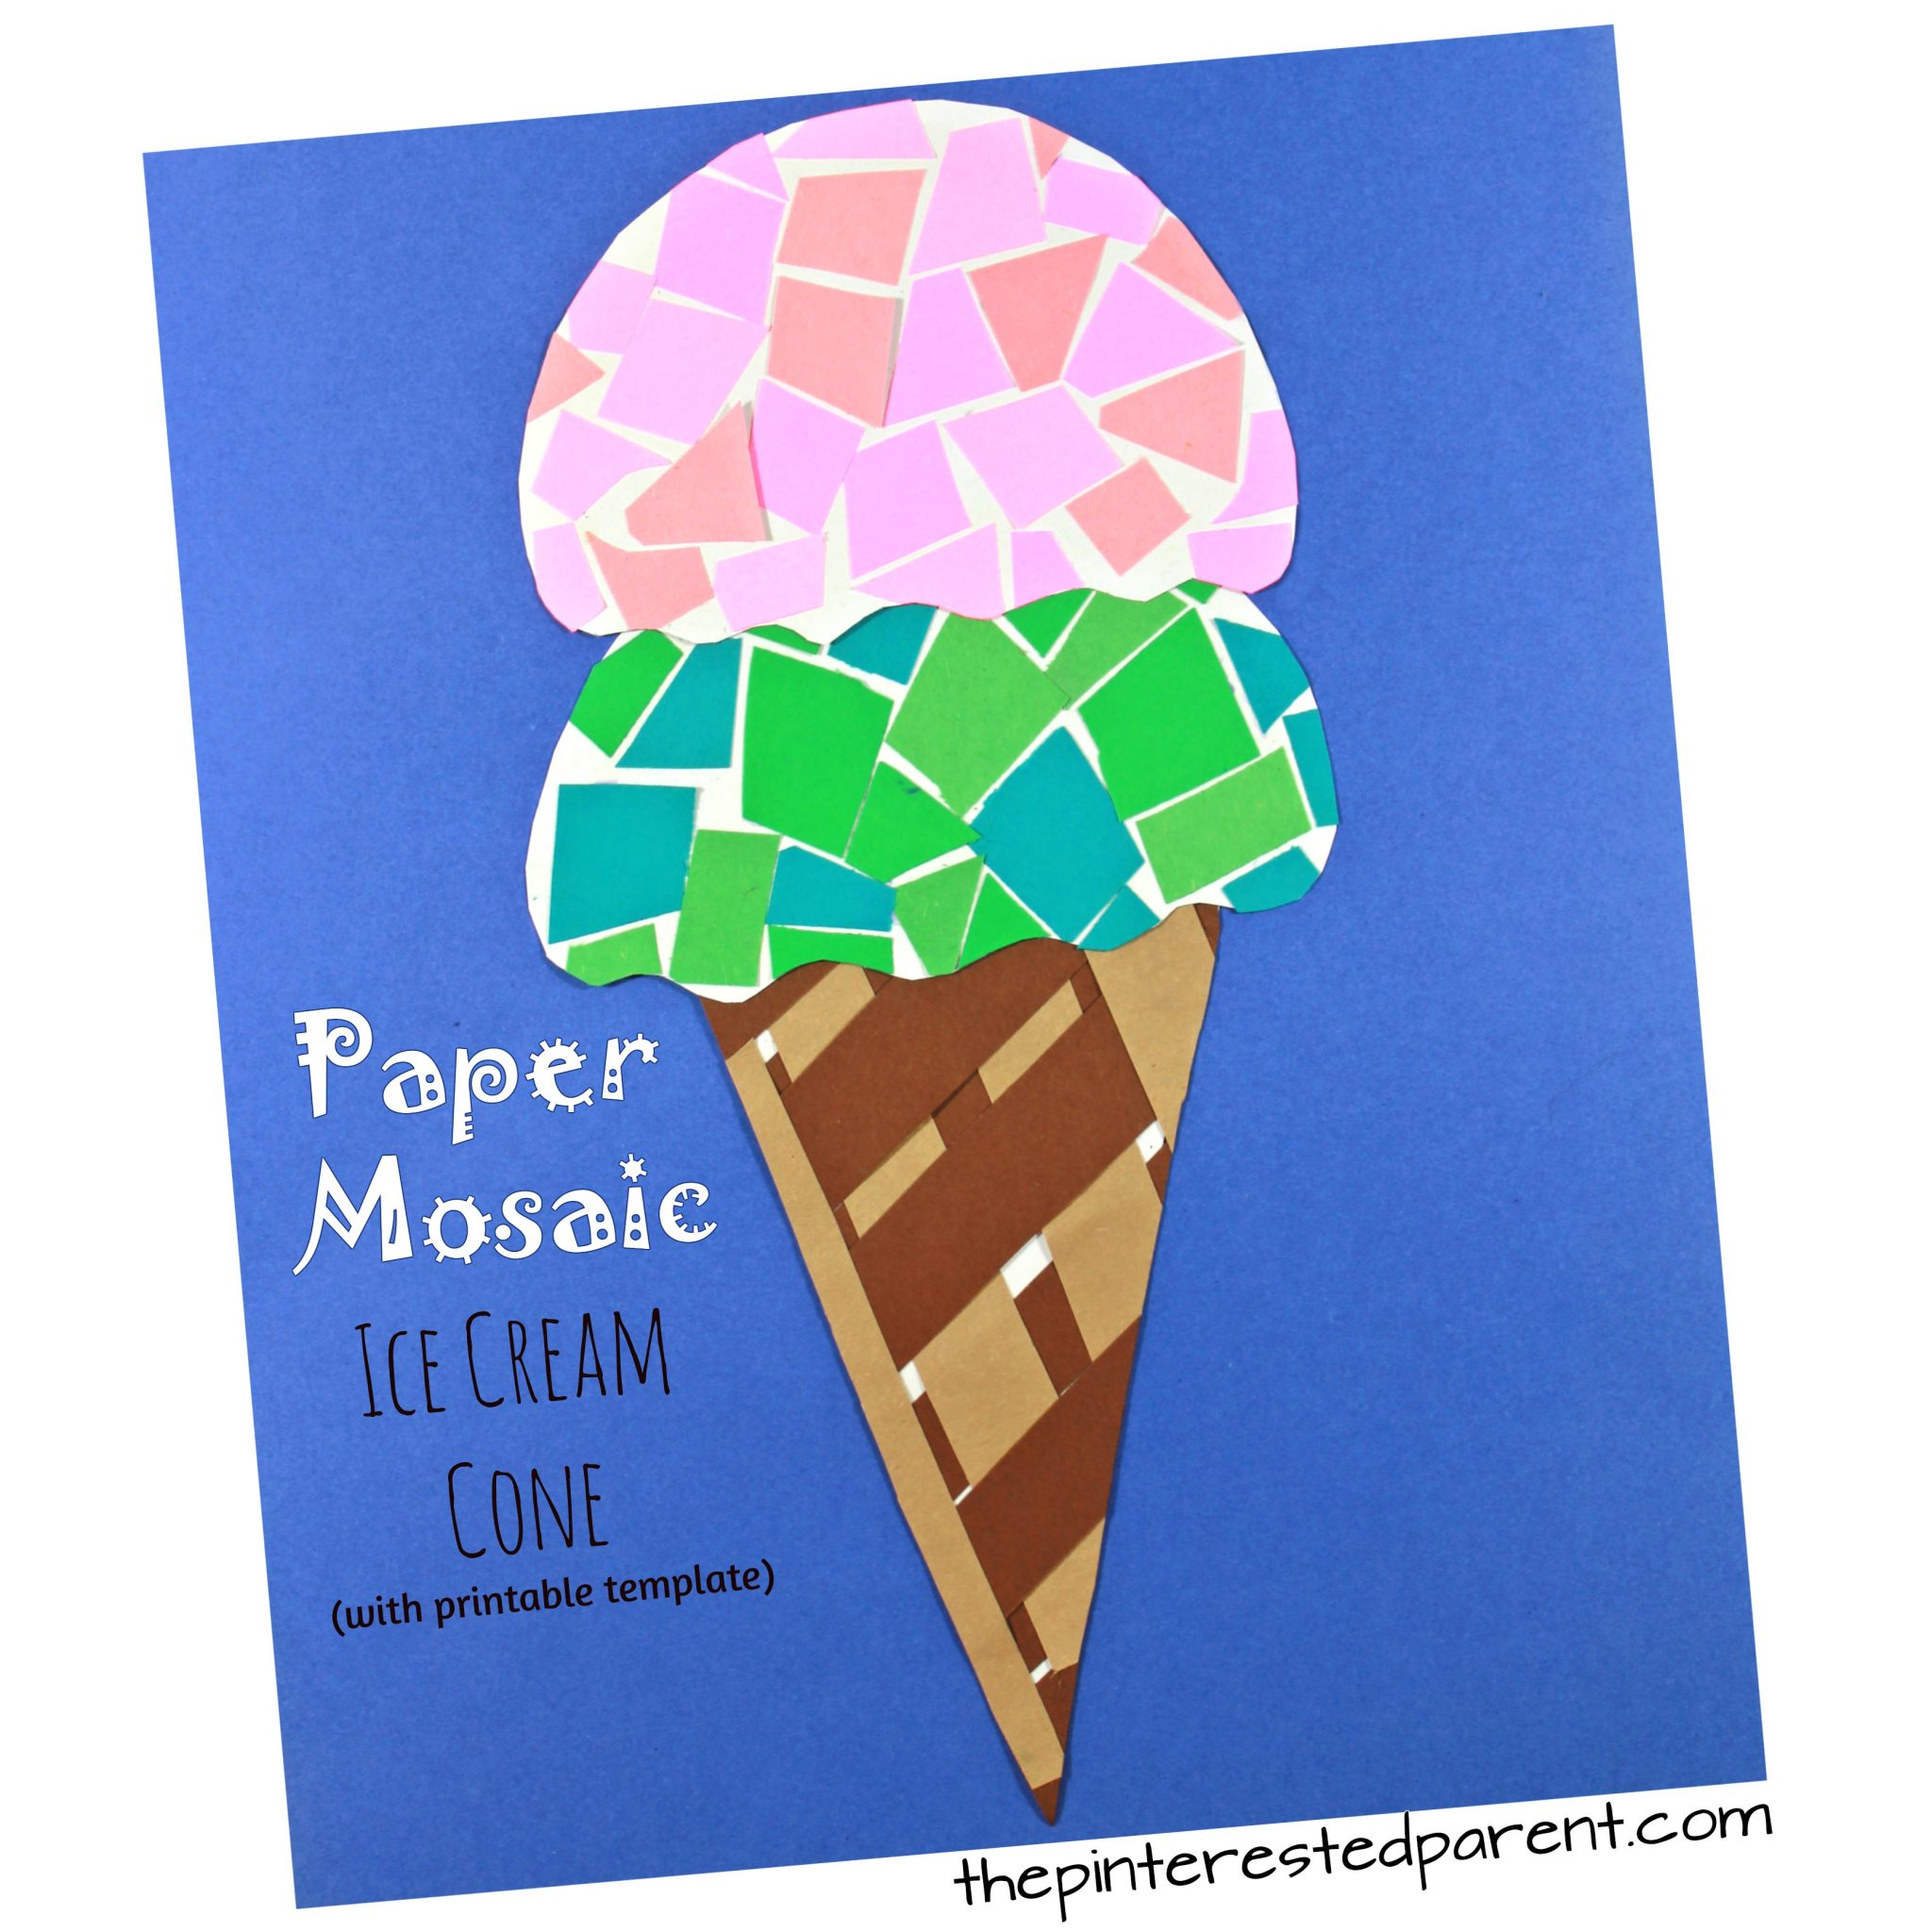 Printable Paper Mosaic Ice Cream Cone The Pinterested Parent